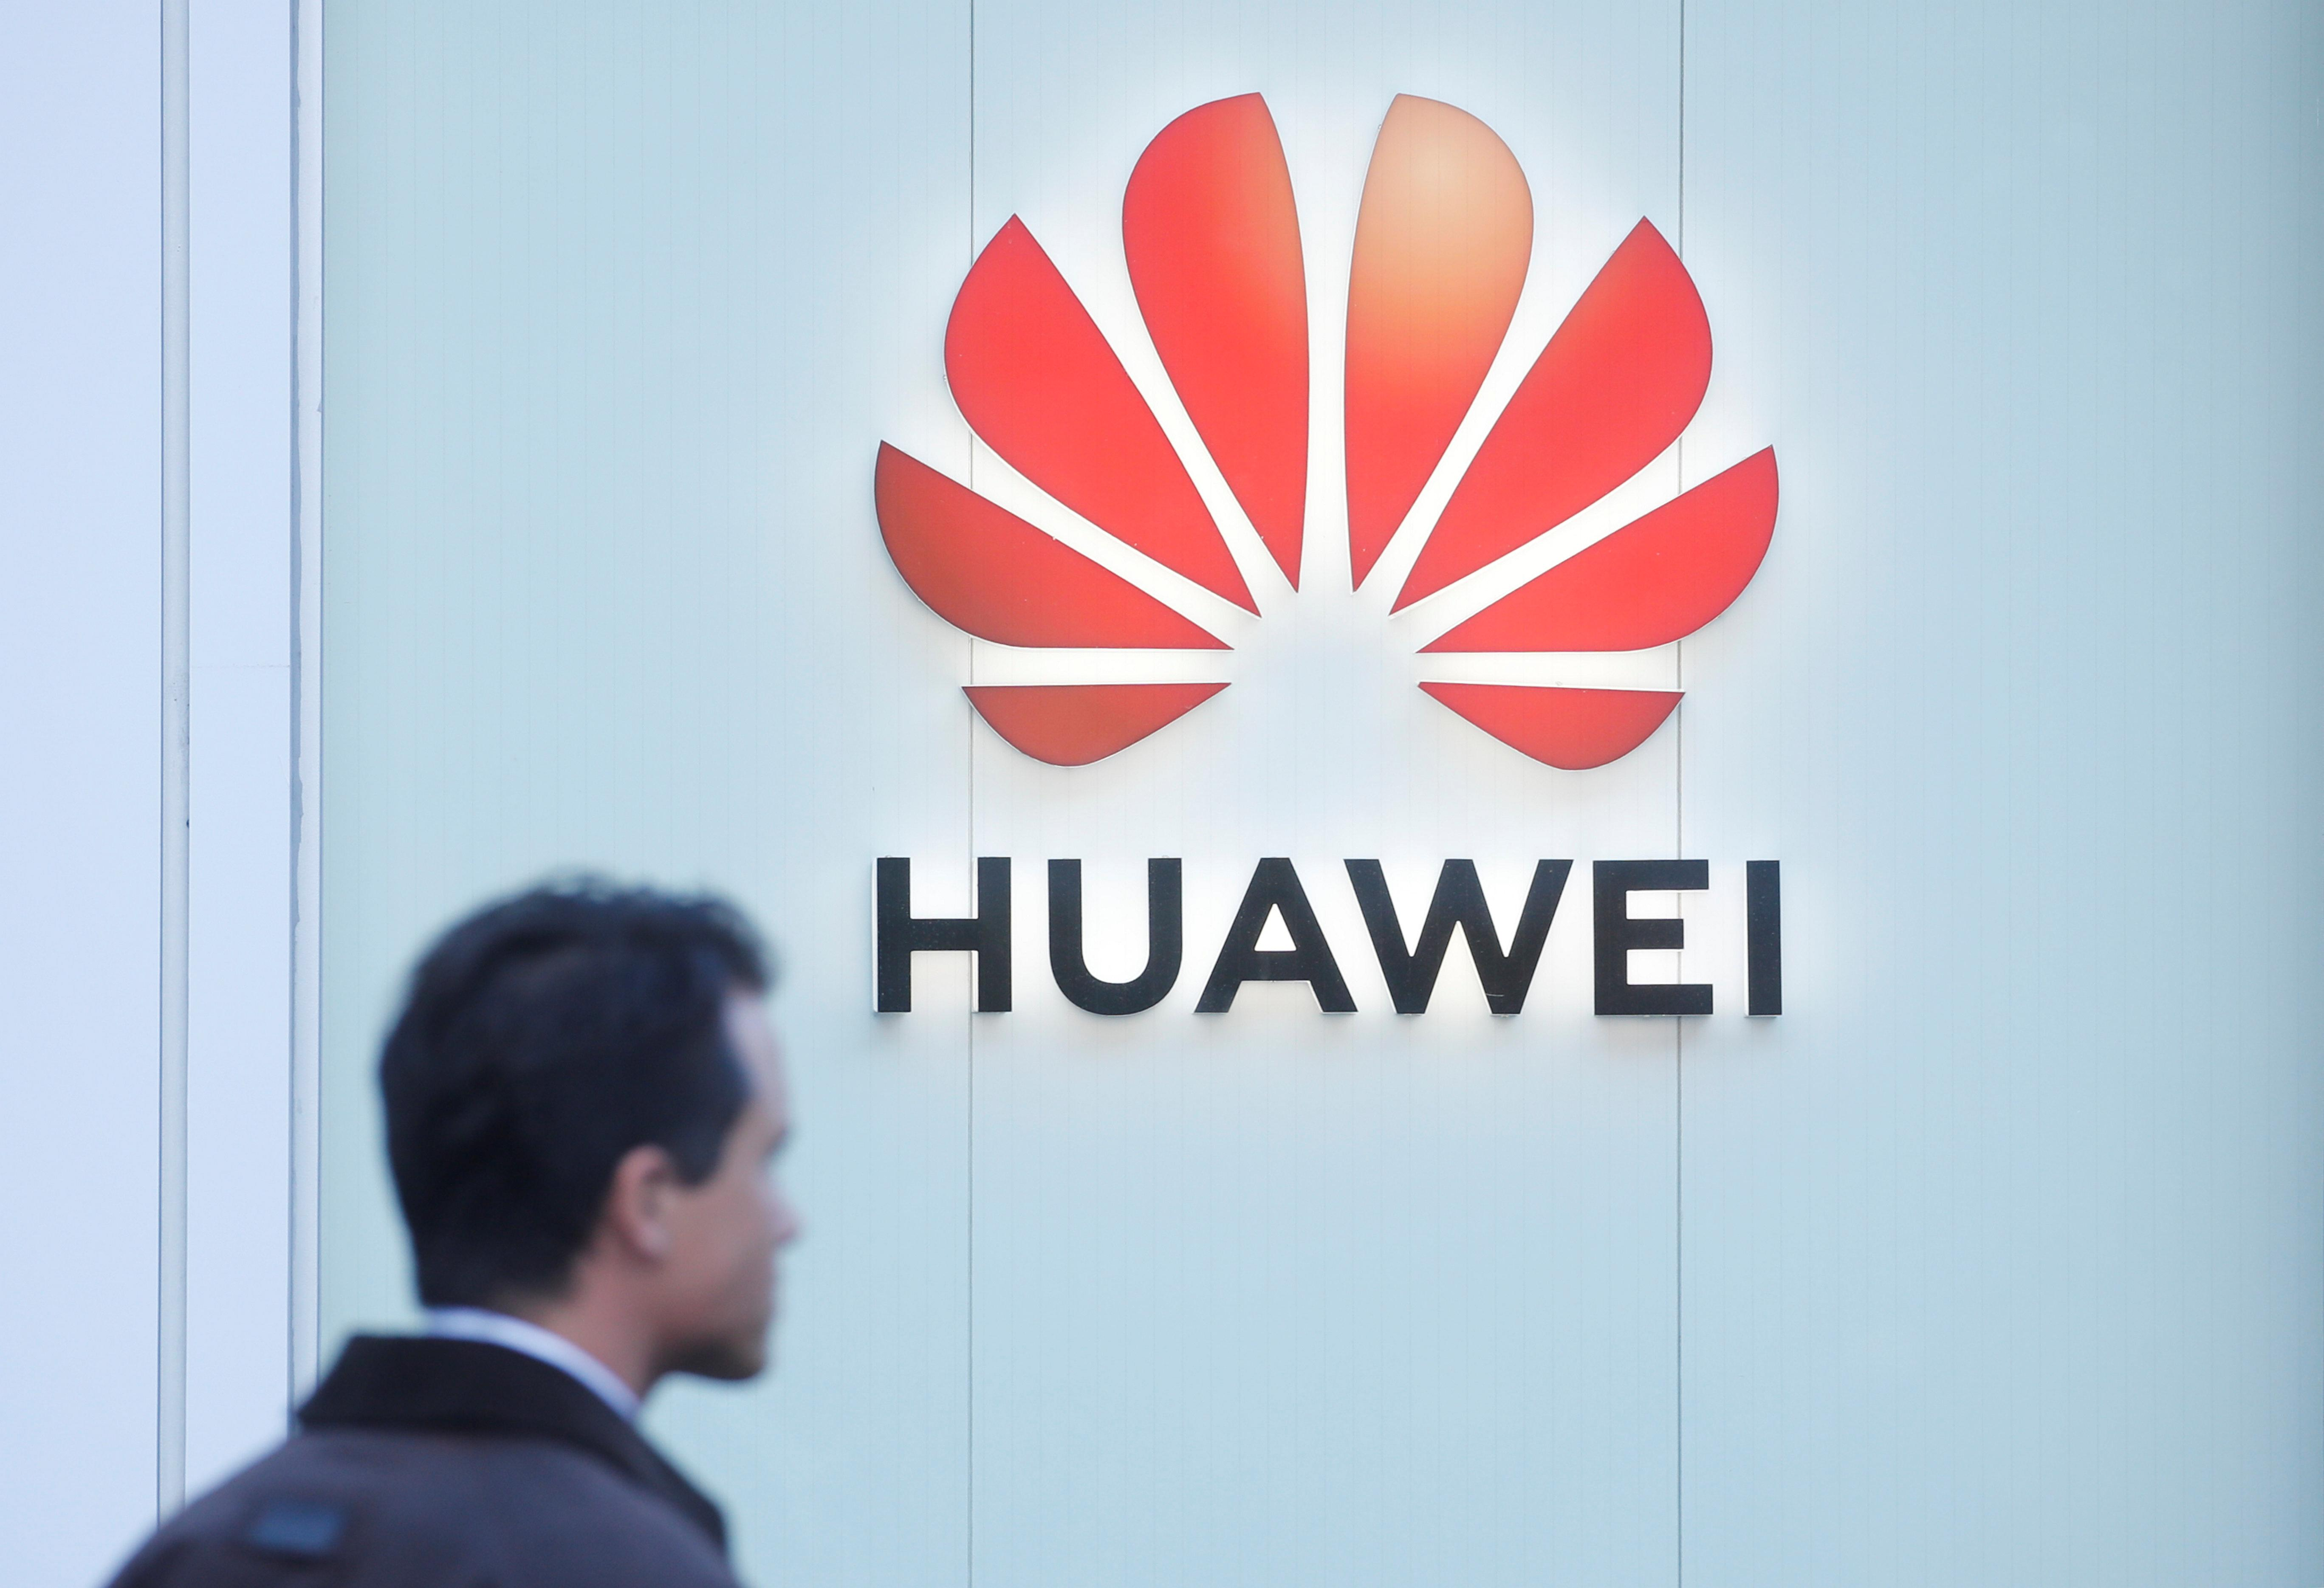 UK officials formally recommend 'limited' role for Huawei in 5G networks